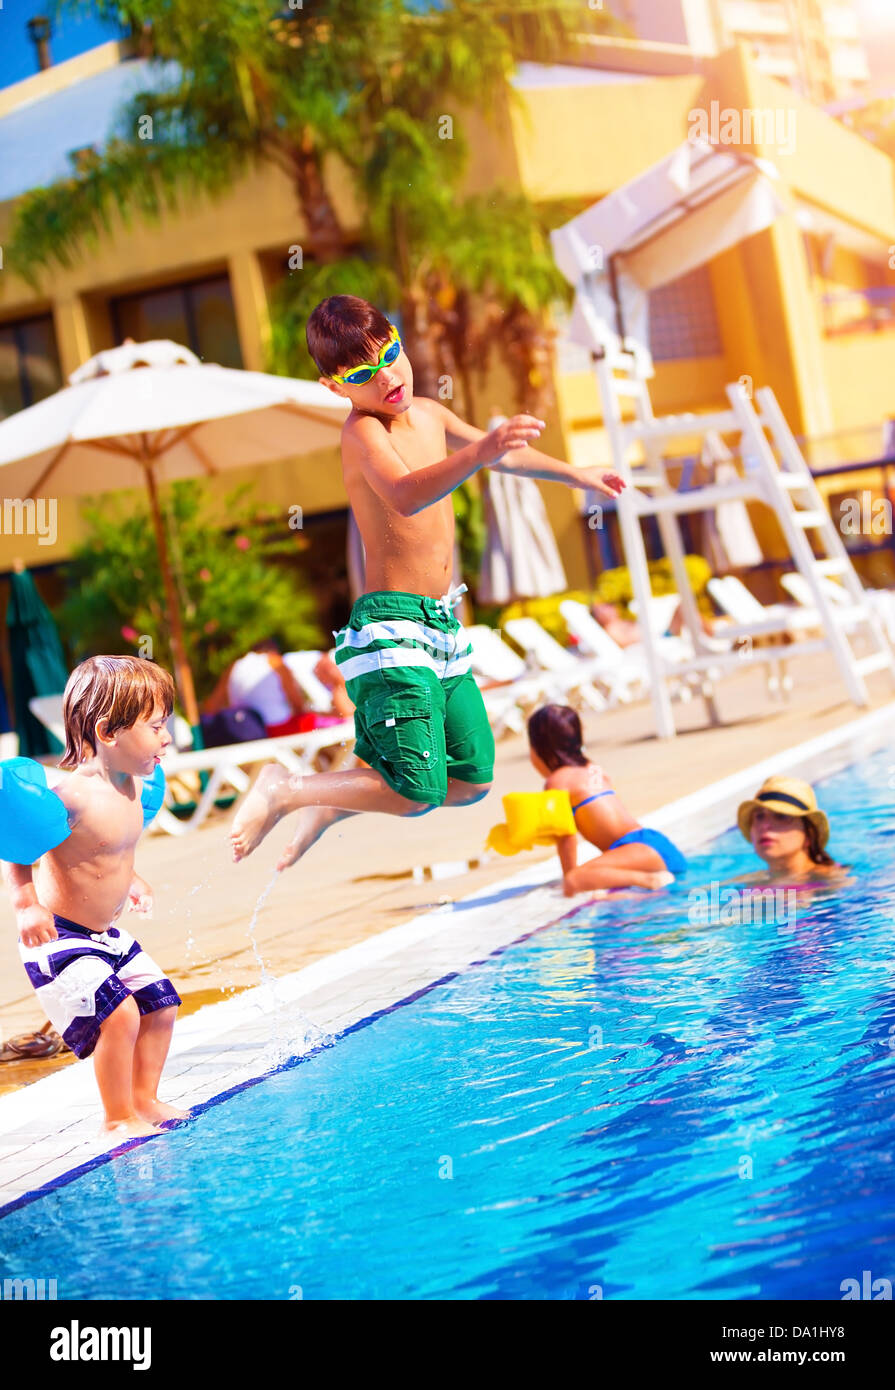 Happy family having fun in the pool, son jumping into the water, relaxed in aquapark, beach resort, summer vacation - Stock Image